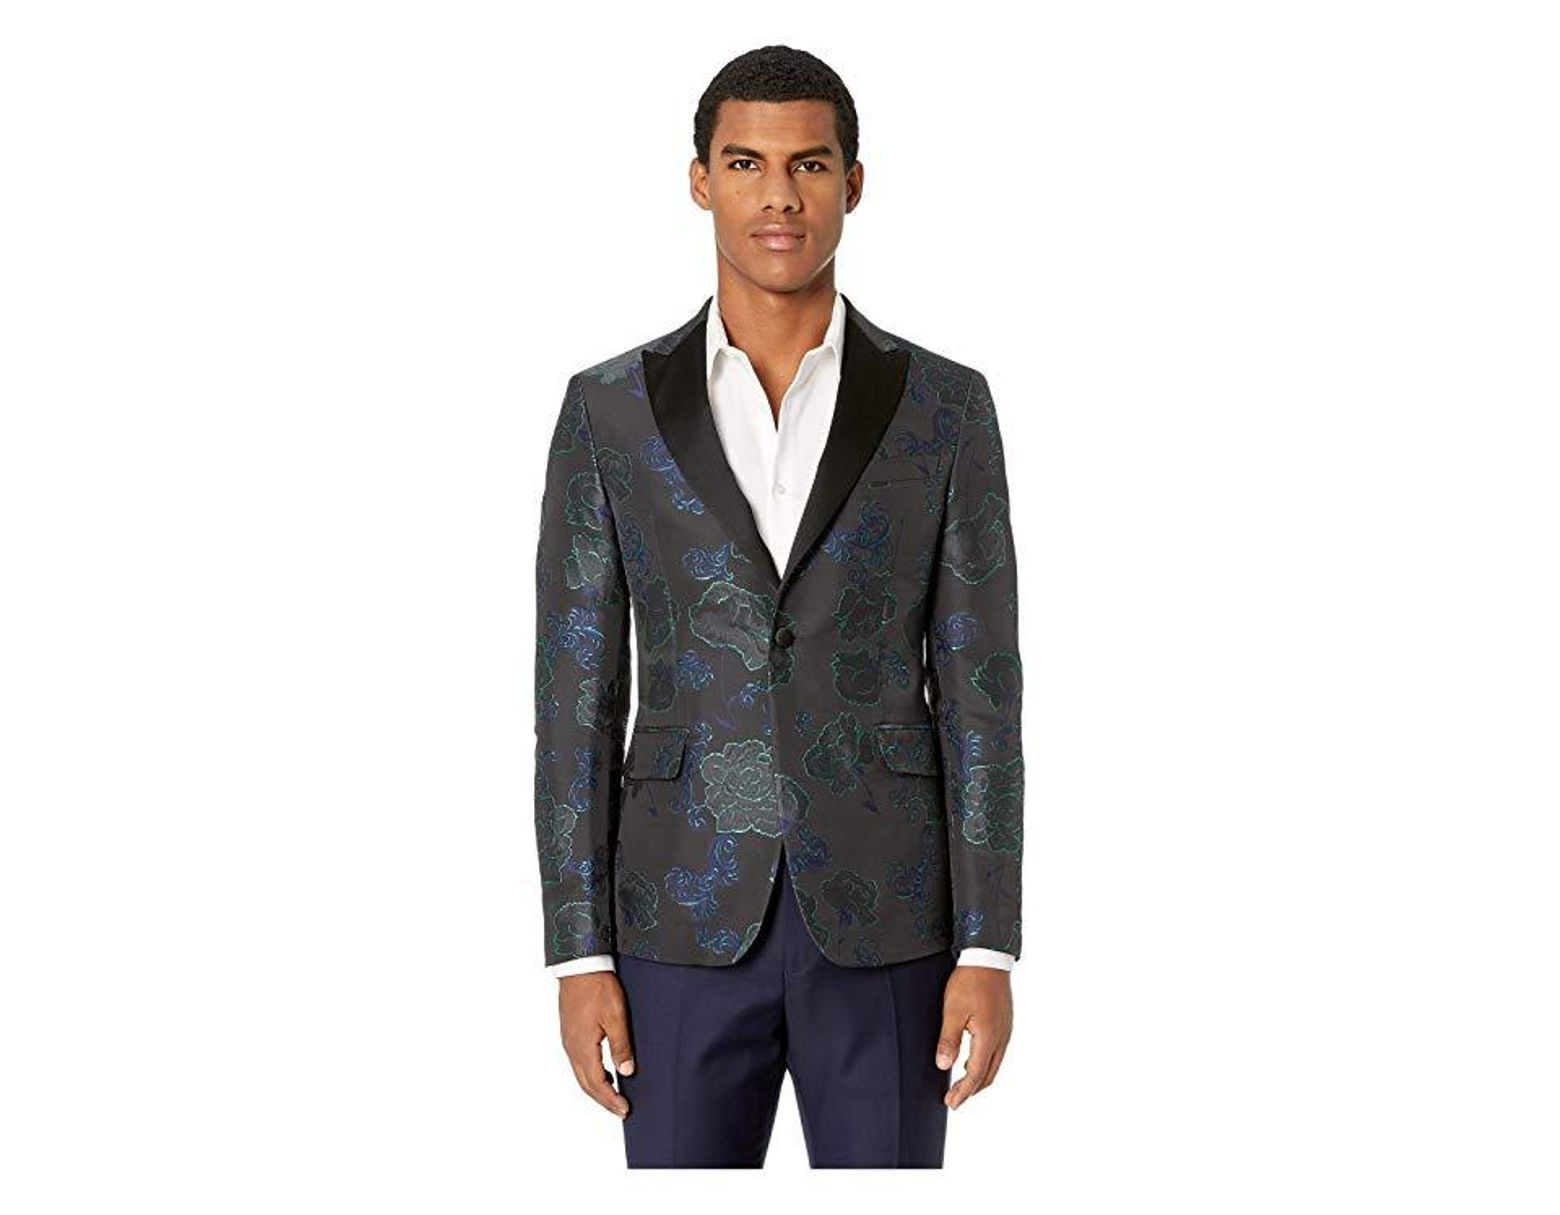 55a54611979 Versace Brocade Tuxedo Jacket (blue Navy/grey/green) Coat in Blue for Men -  Save 22% - Lyst